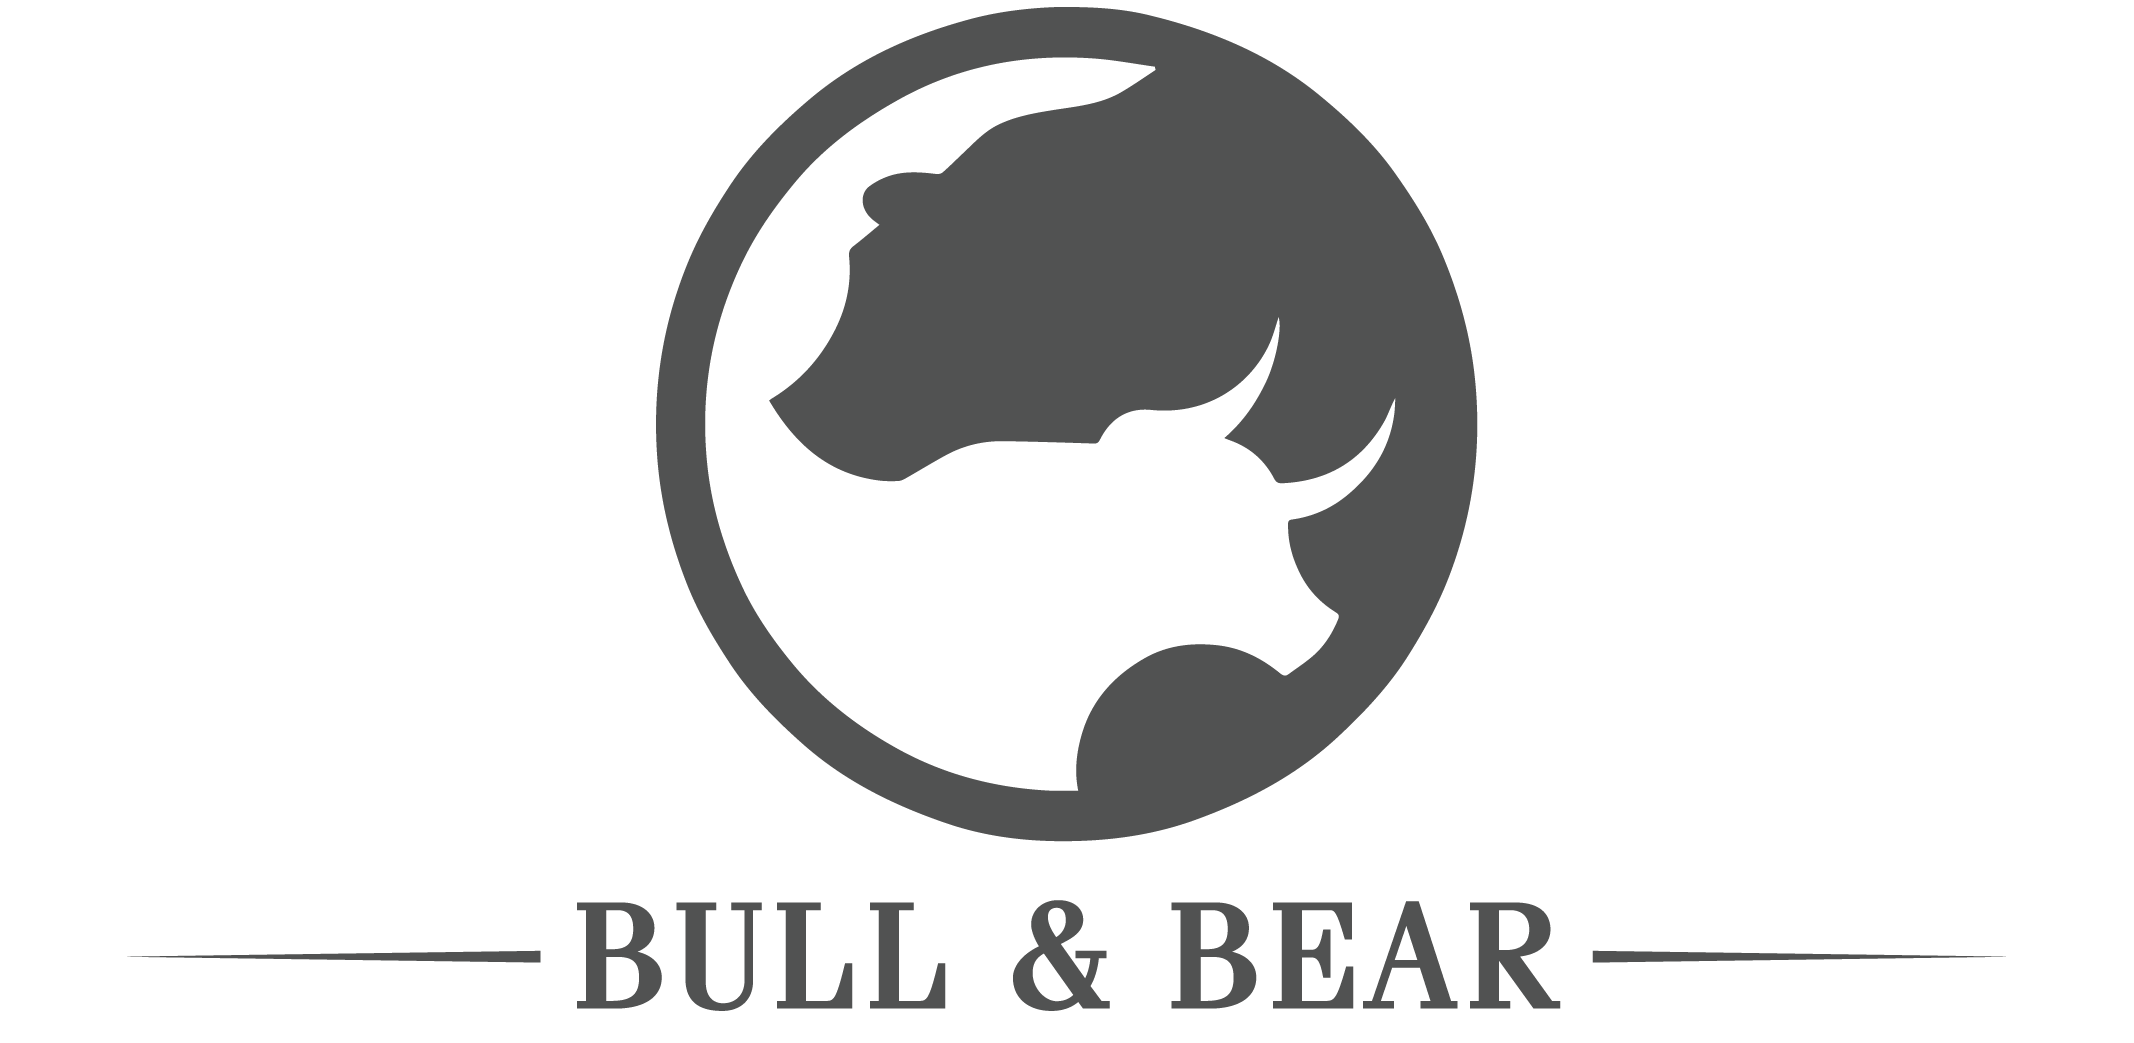 Bull and Bear brand logo